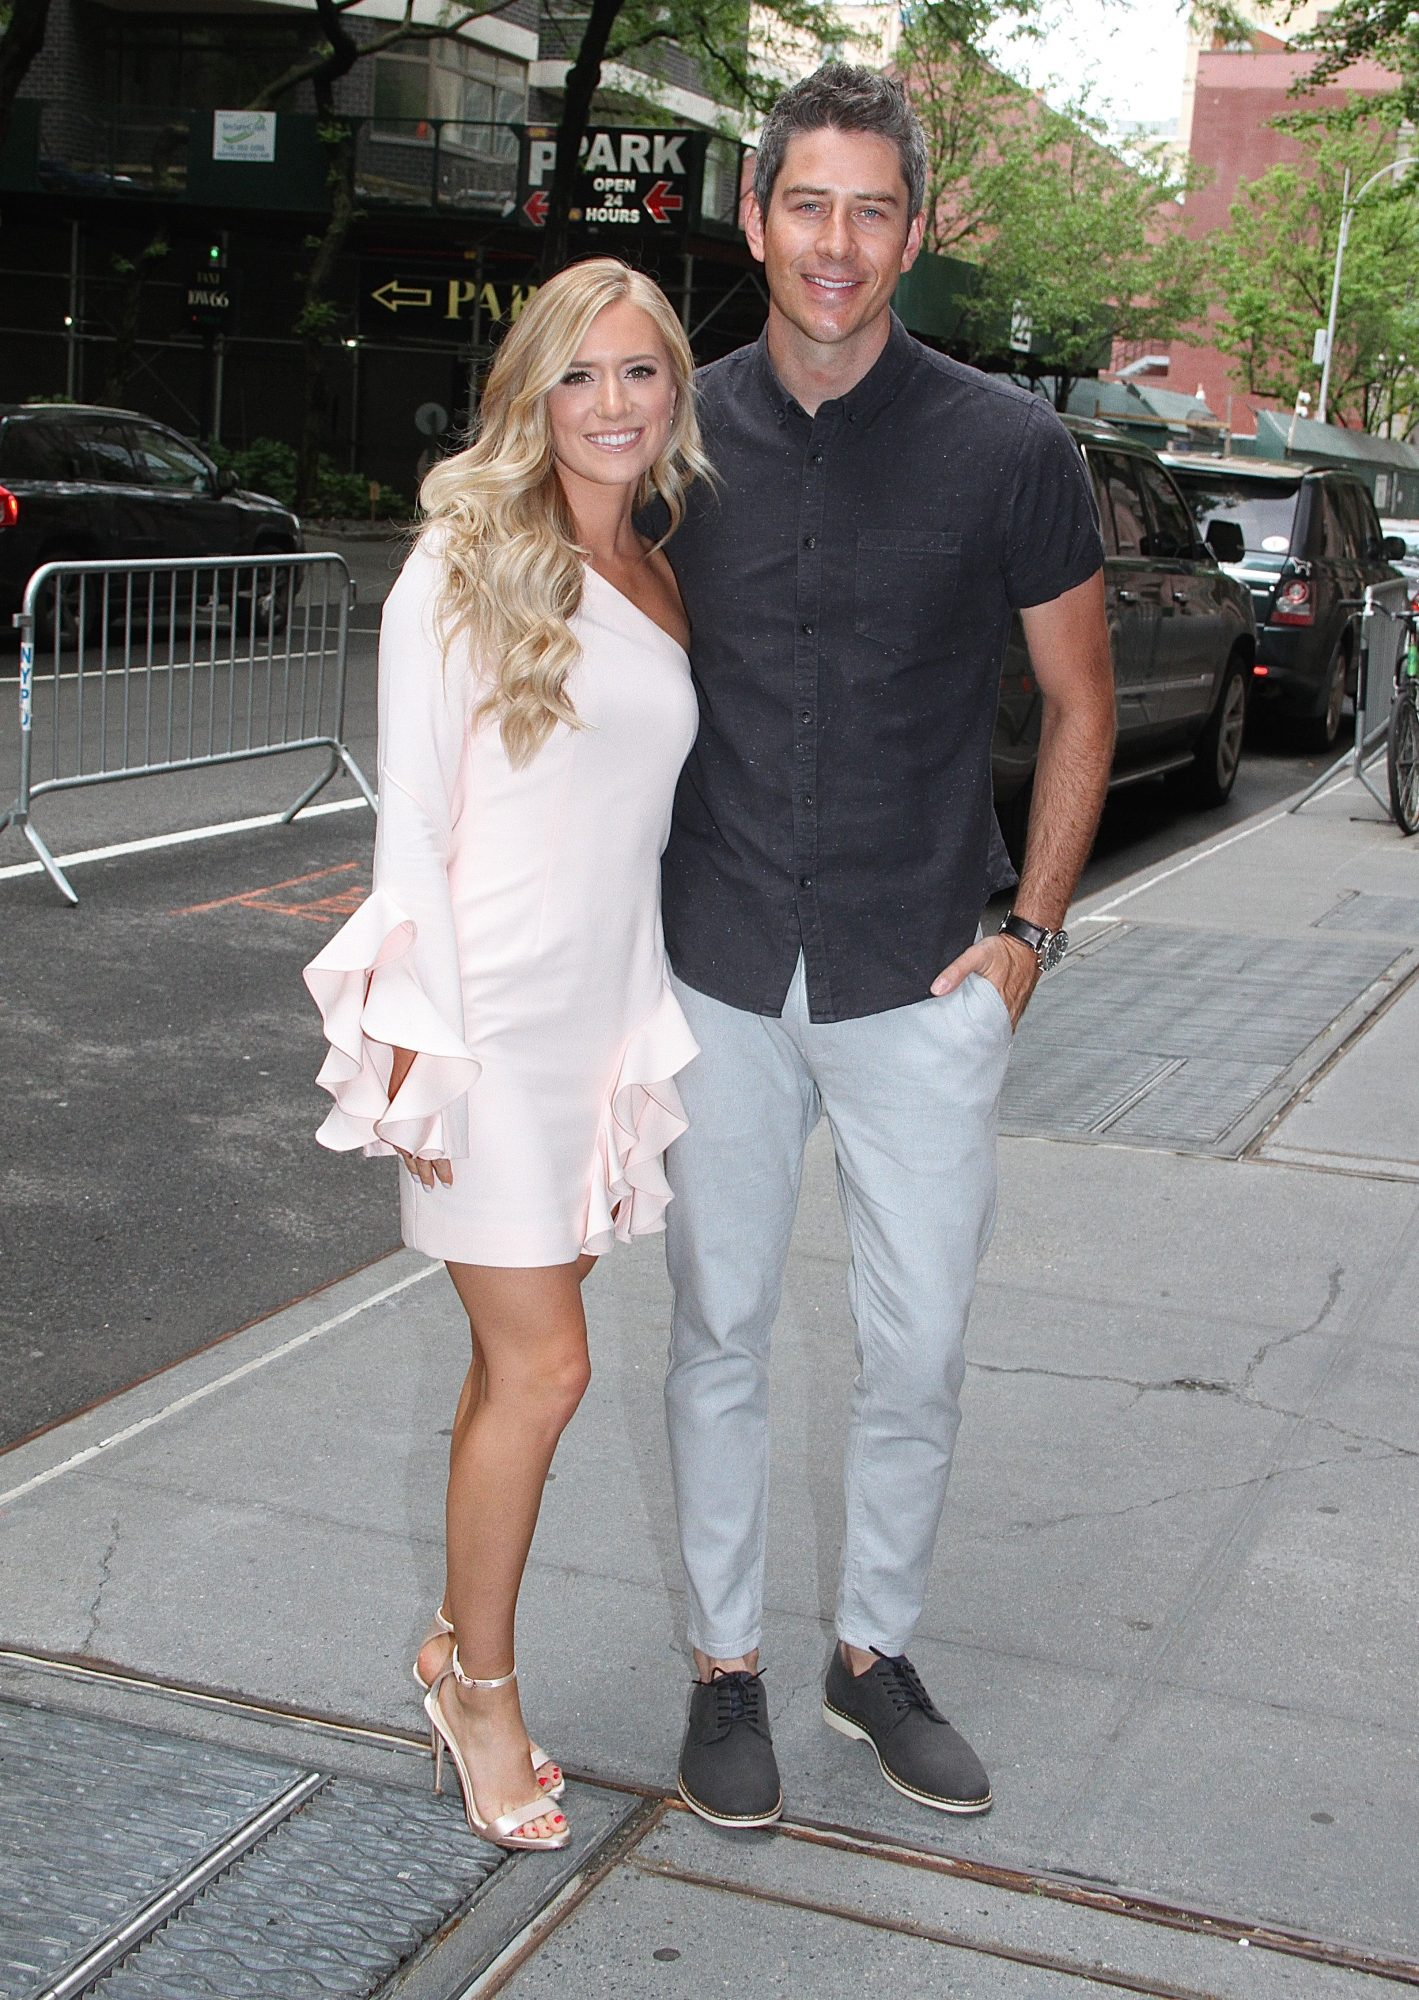 Lauren Luyendyk Reflects on 'Awkward' 1st Date With Now-Husband Arie on 'The Bachelor'